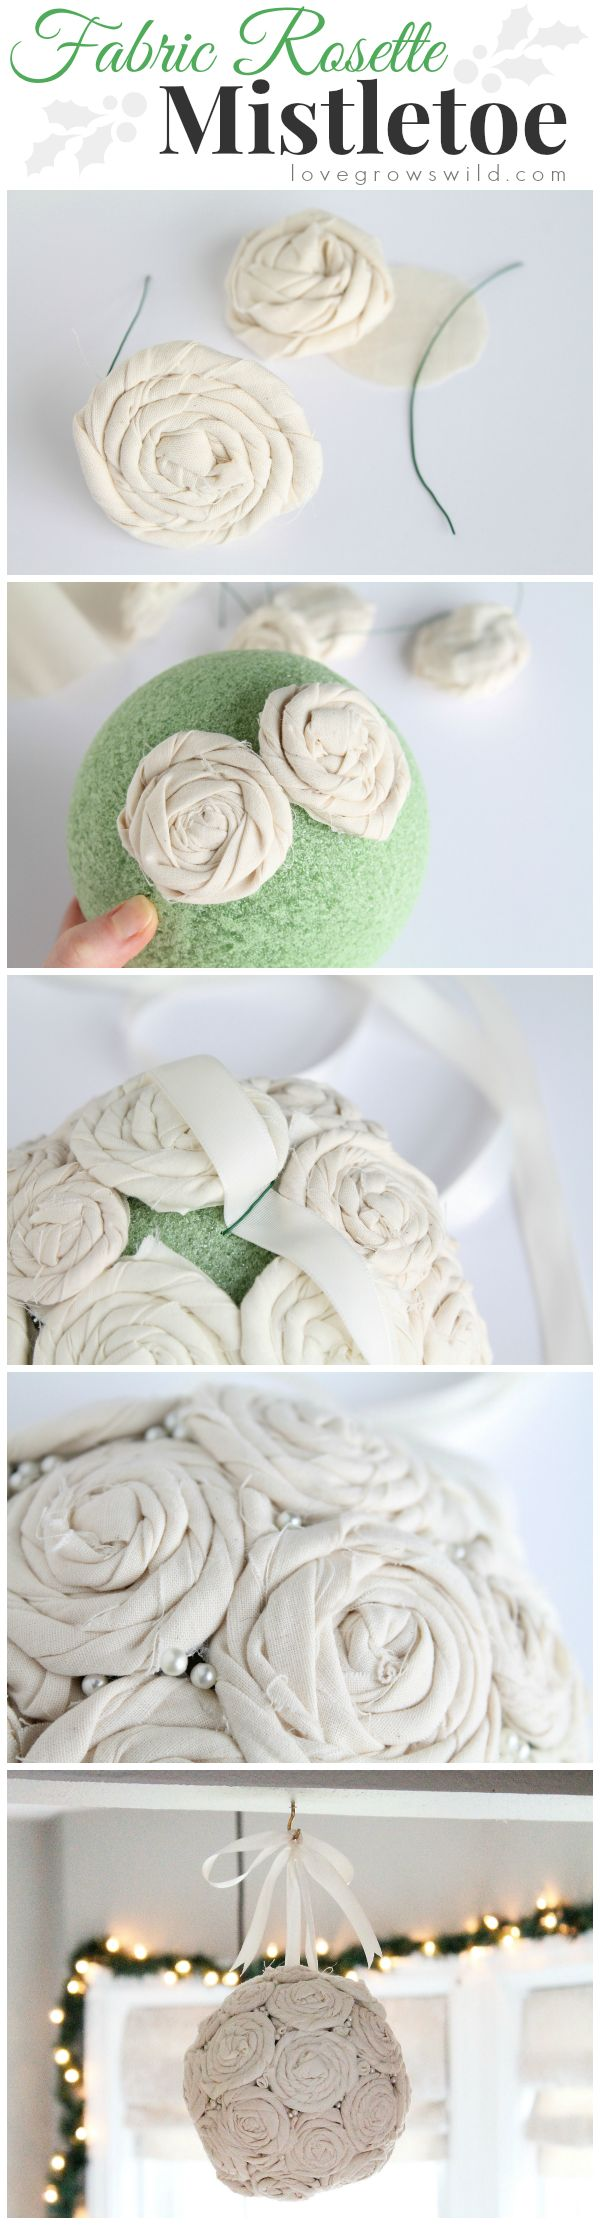 Steal some smooches underneath this beautiful DIY Fabric Rosette Mistletoe Ball!